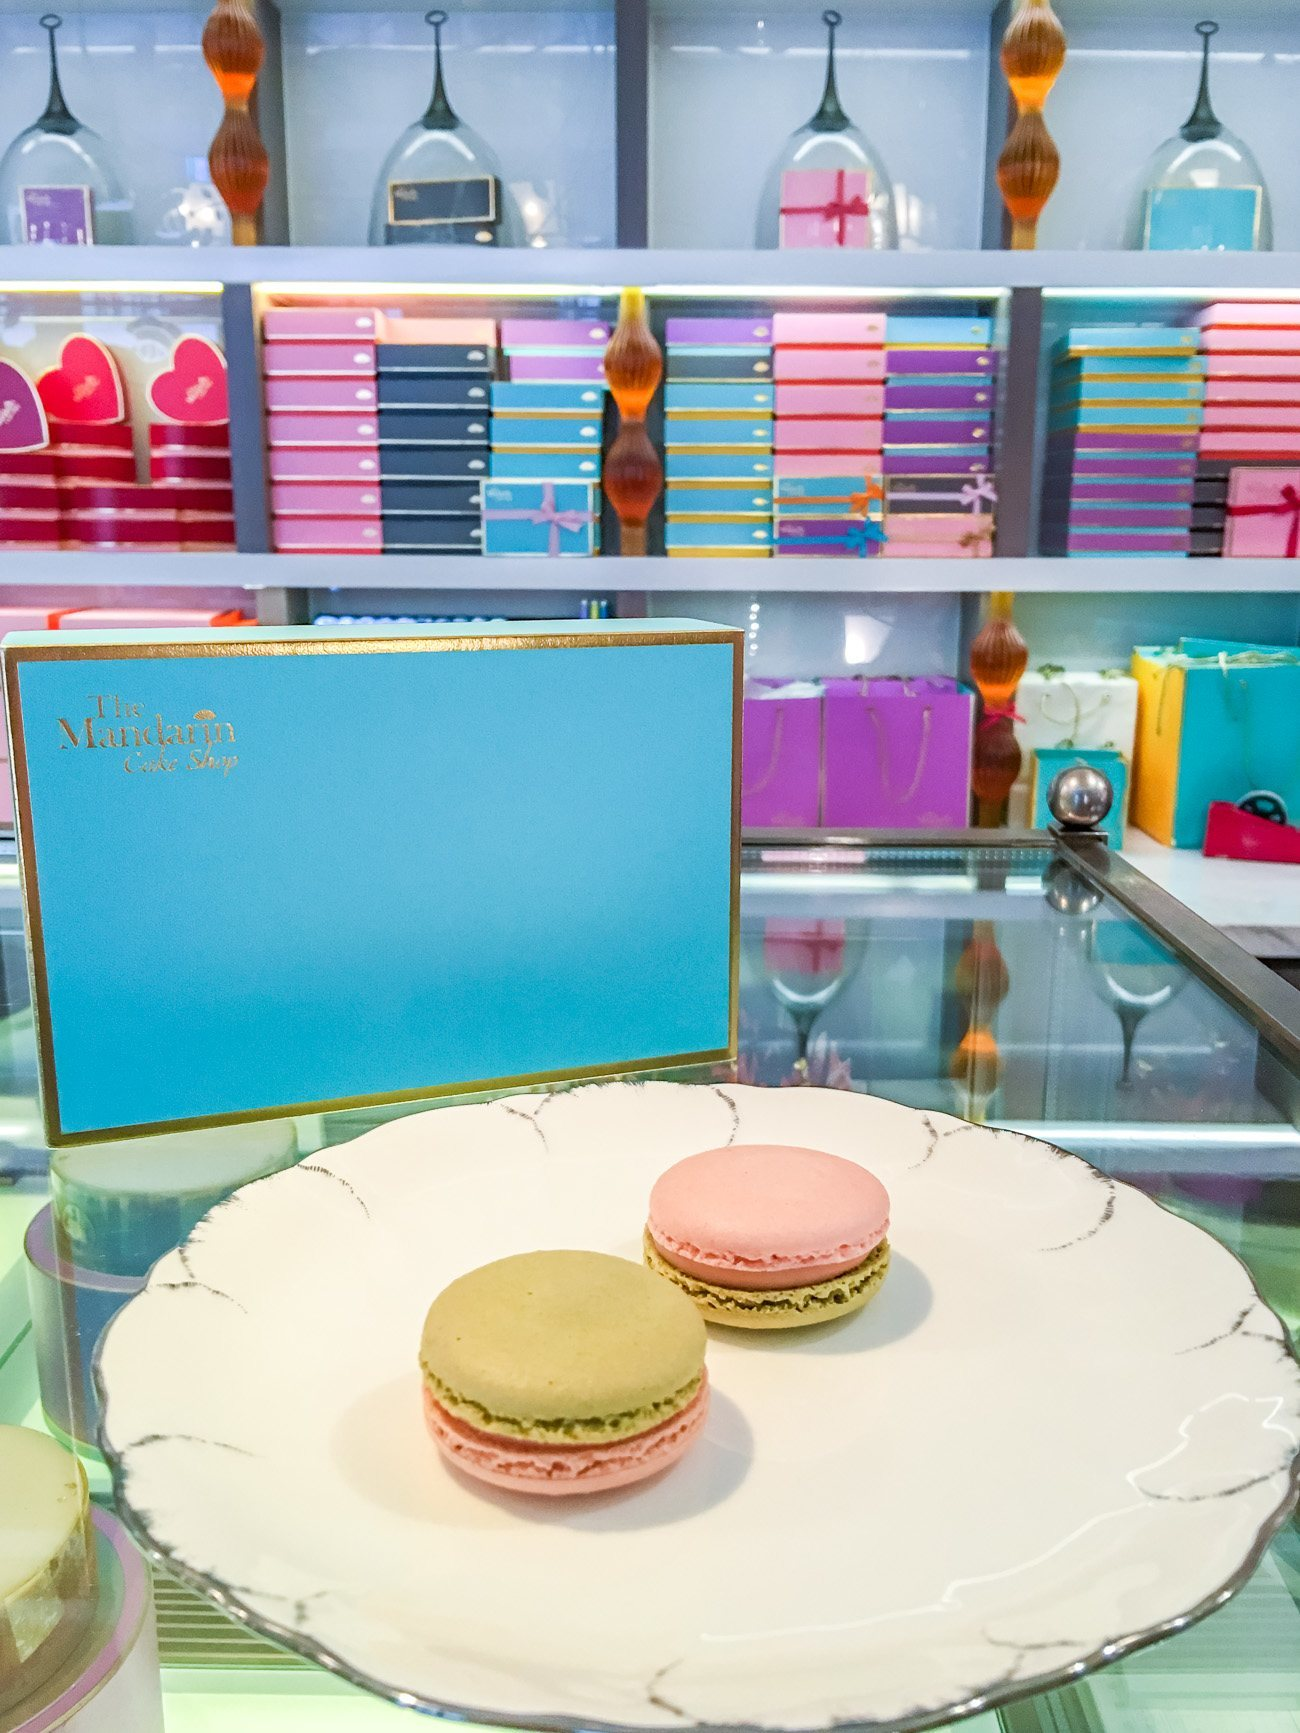 Guava macarons are a must-order at Mandarin Oriental, Taipei's Cake Shop